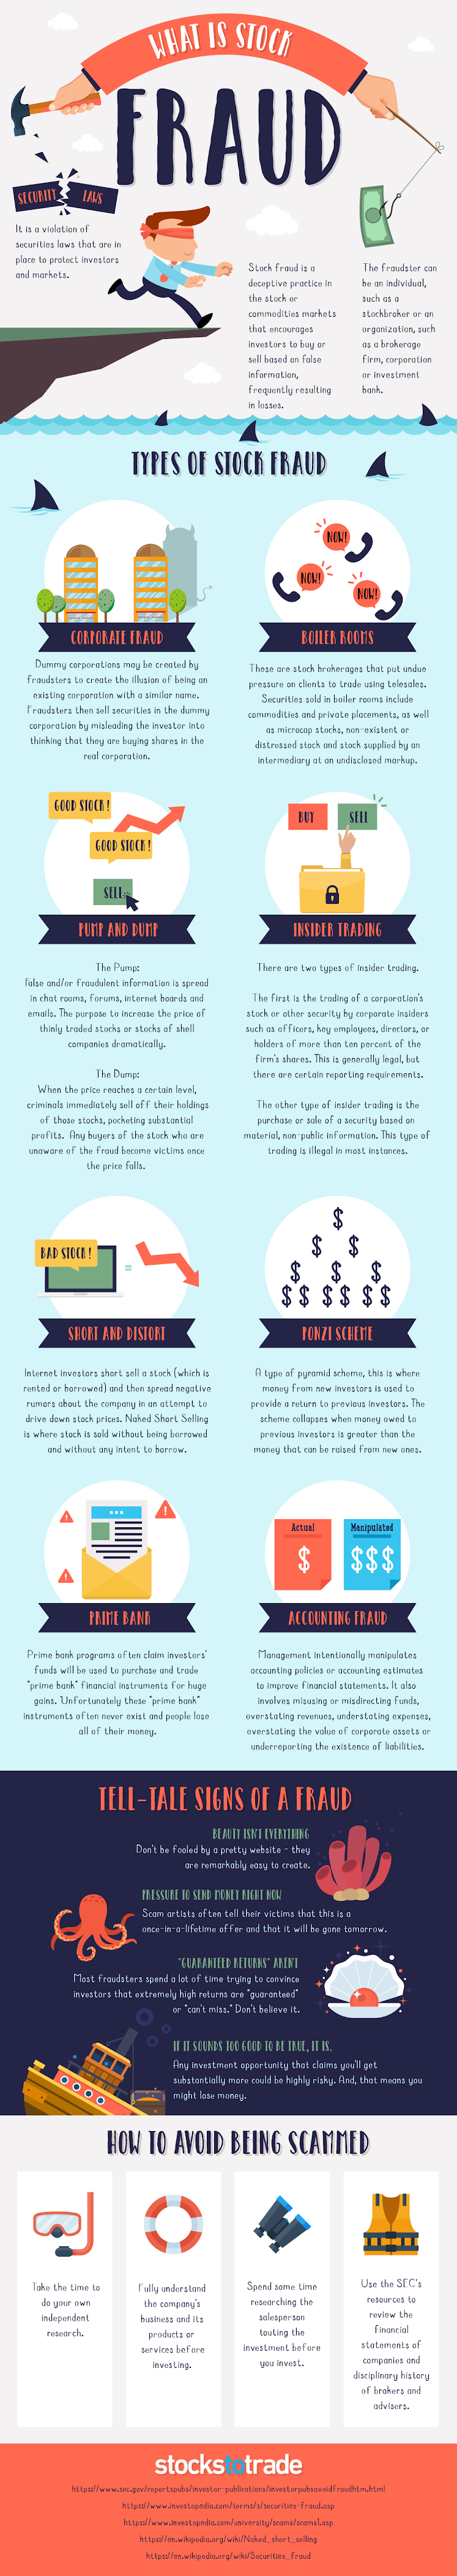 What is Stock Fraud? #infographic #Stock Fraud #infographics #Scams #What is Stock